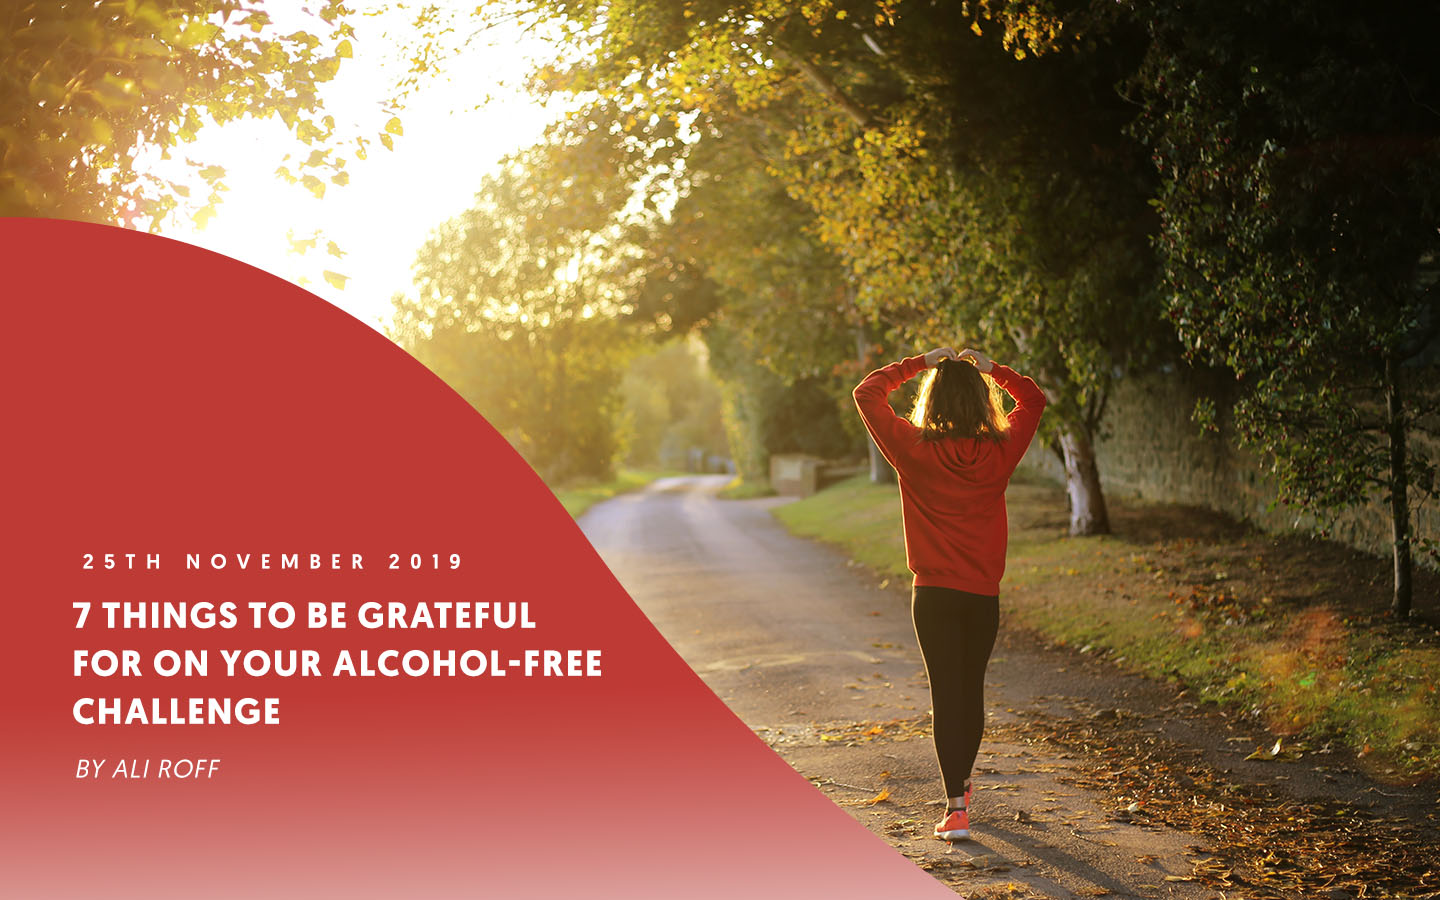 7 things to be grateful for on your Alcohol-Free Challenge – by Ali Roff